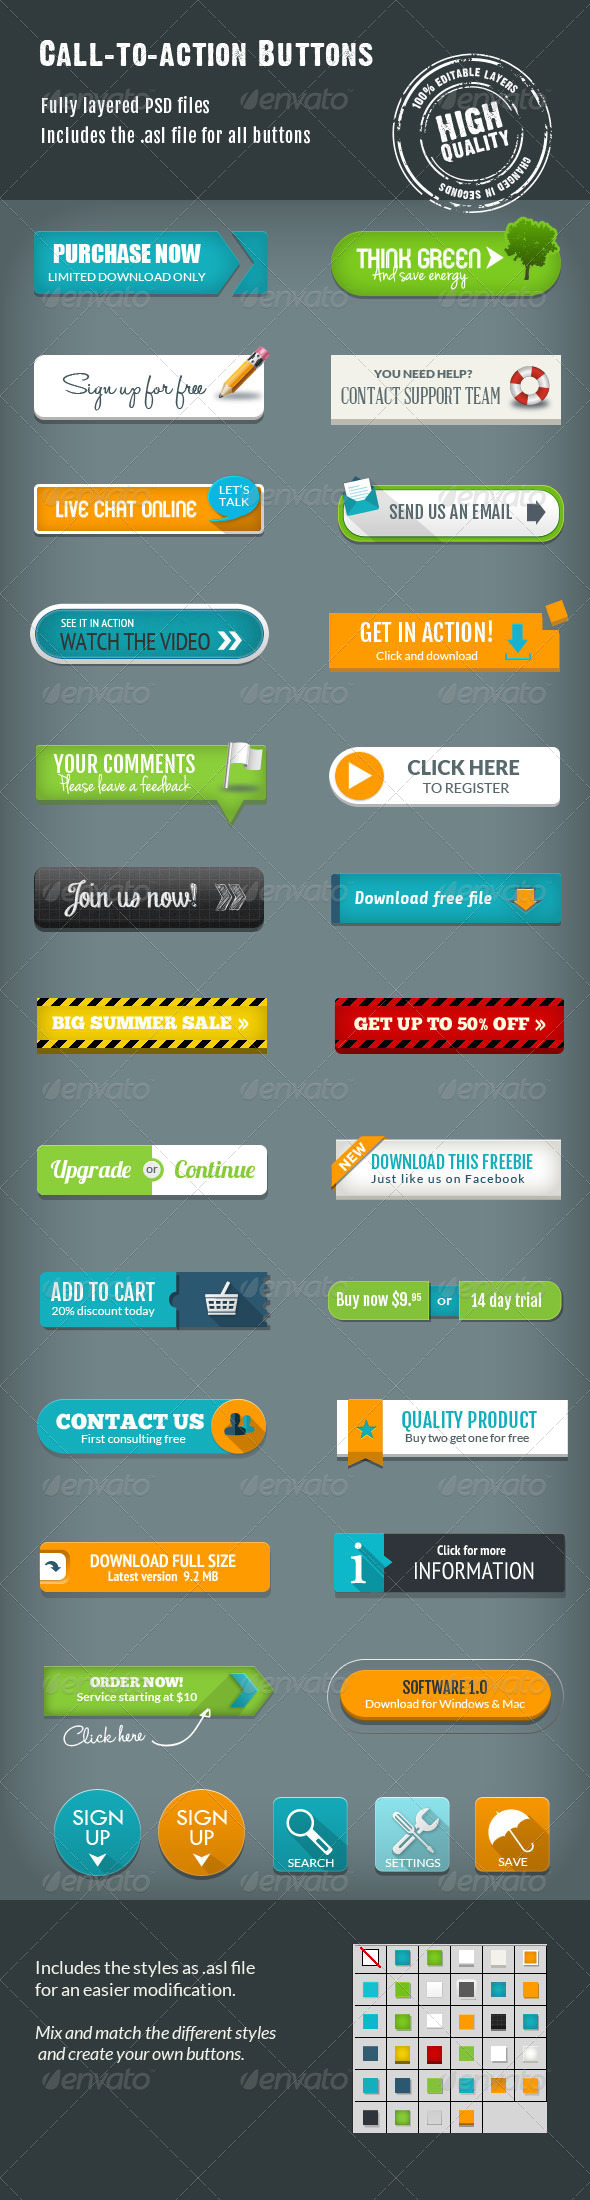 GraphicRiver Call-To-Action Buttons Vol.III 7370703